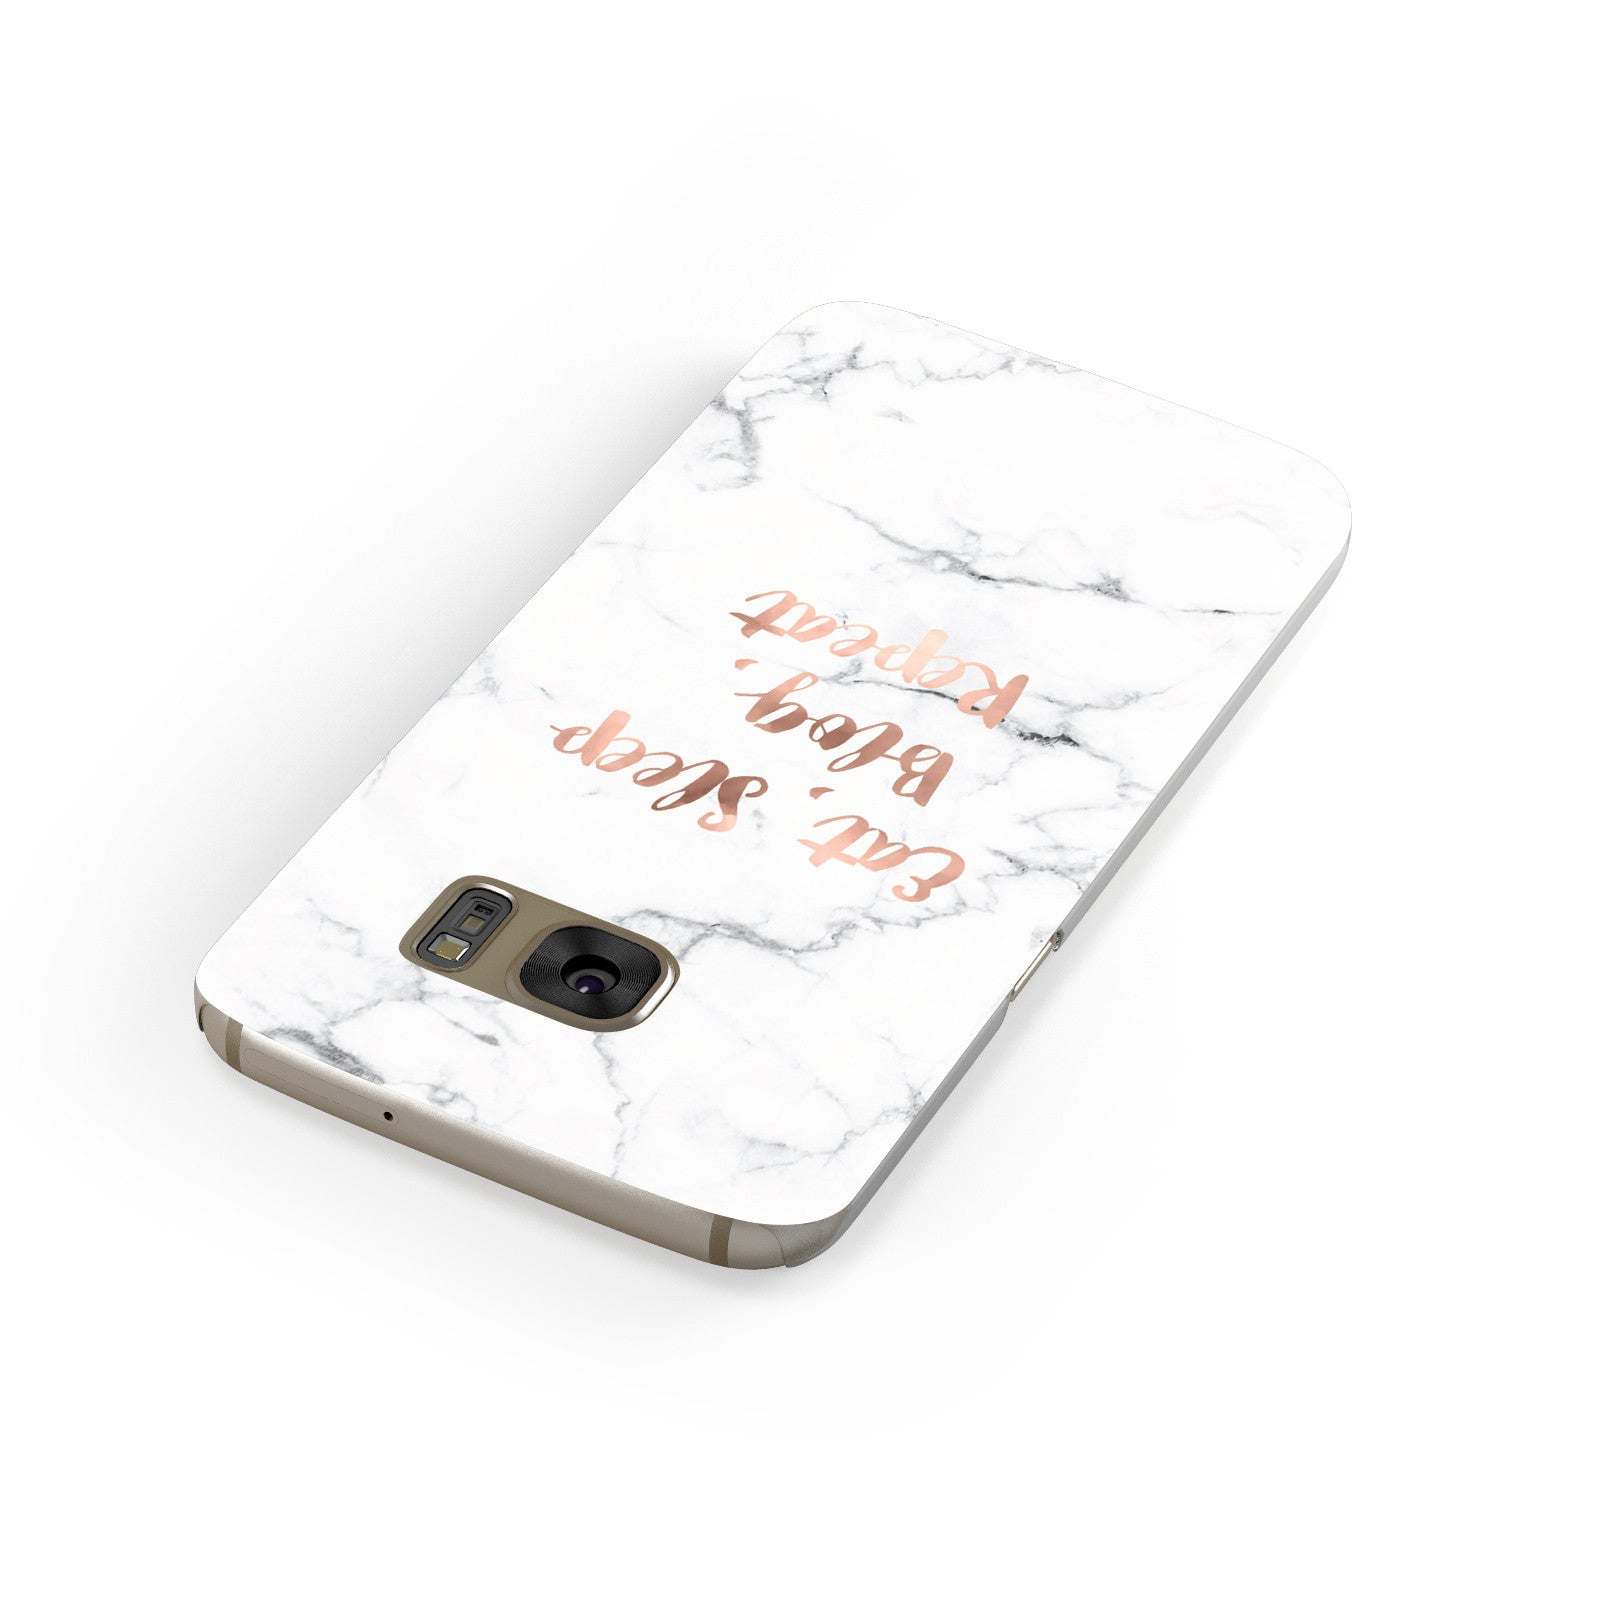 Eat Sleep Blog Repeat Marble Effect Samsung Galaxy Case Front Close Up